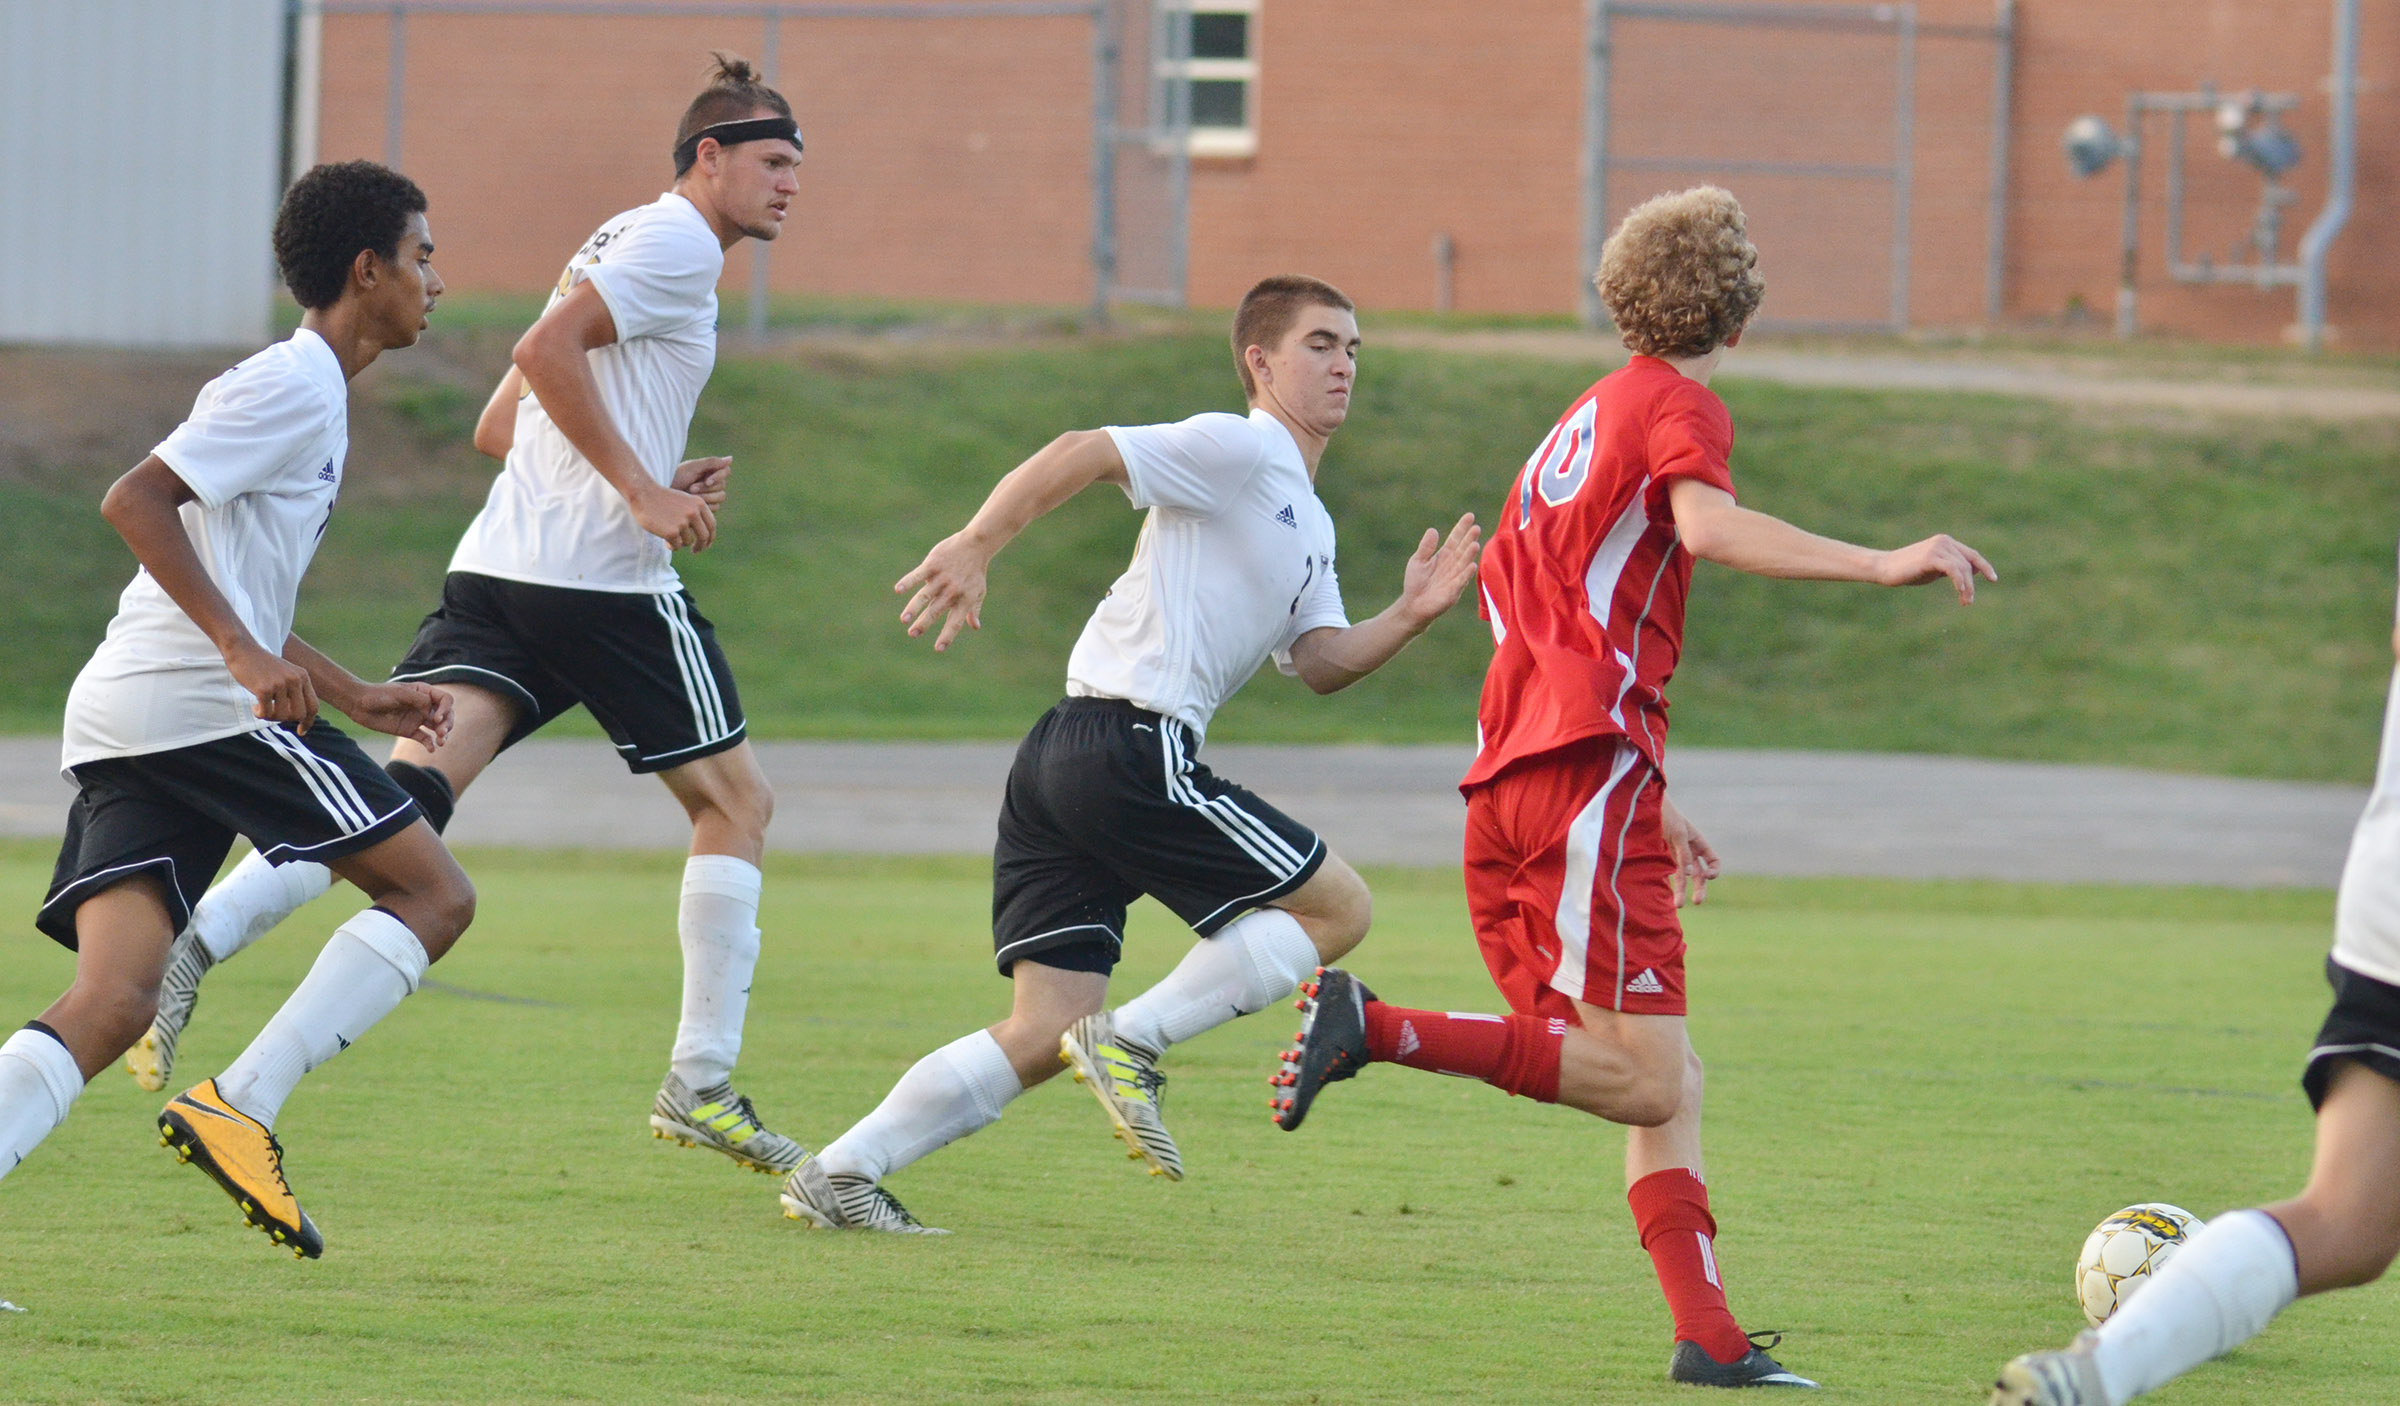 From left, CHS sophomore David Silva and seniors Logan Cole and Cass Kidwell run to the ball.